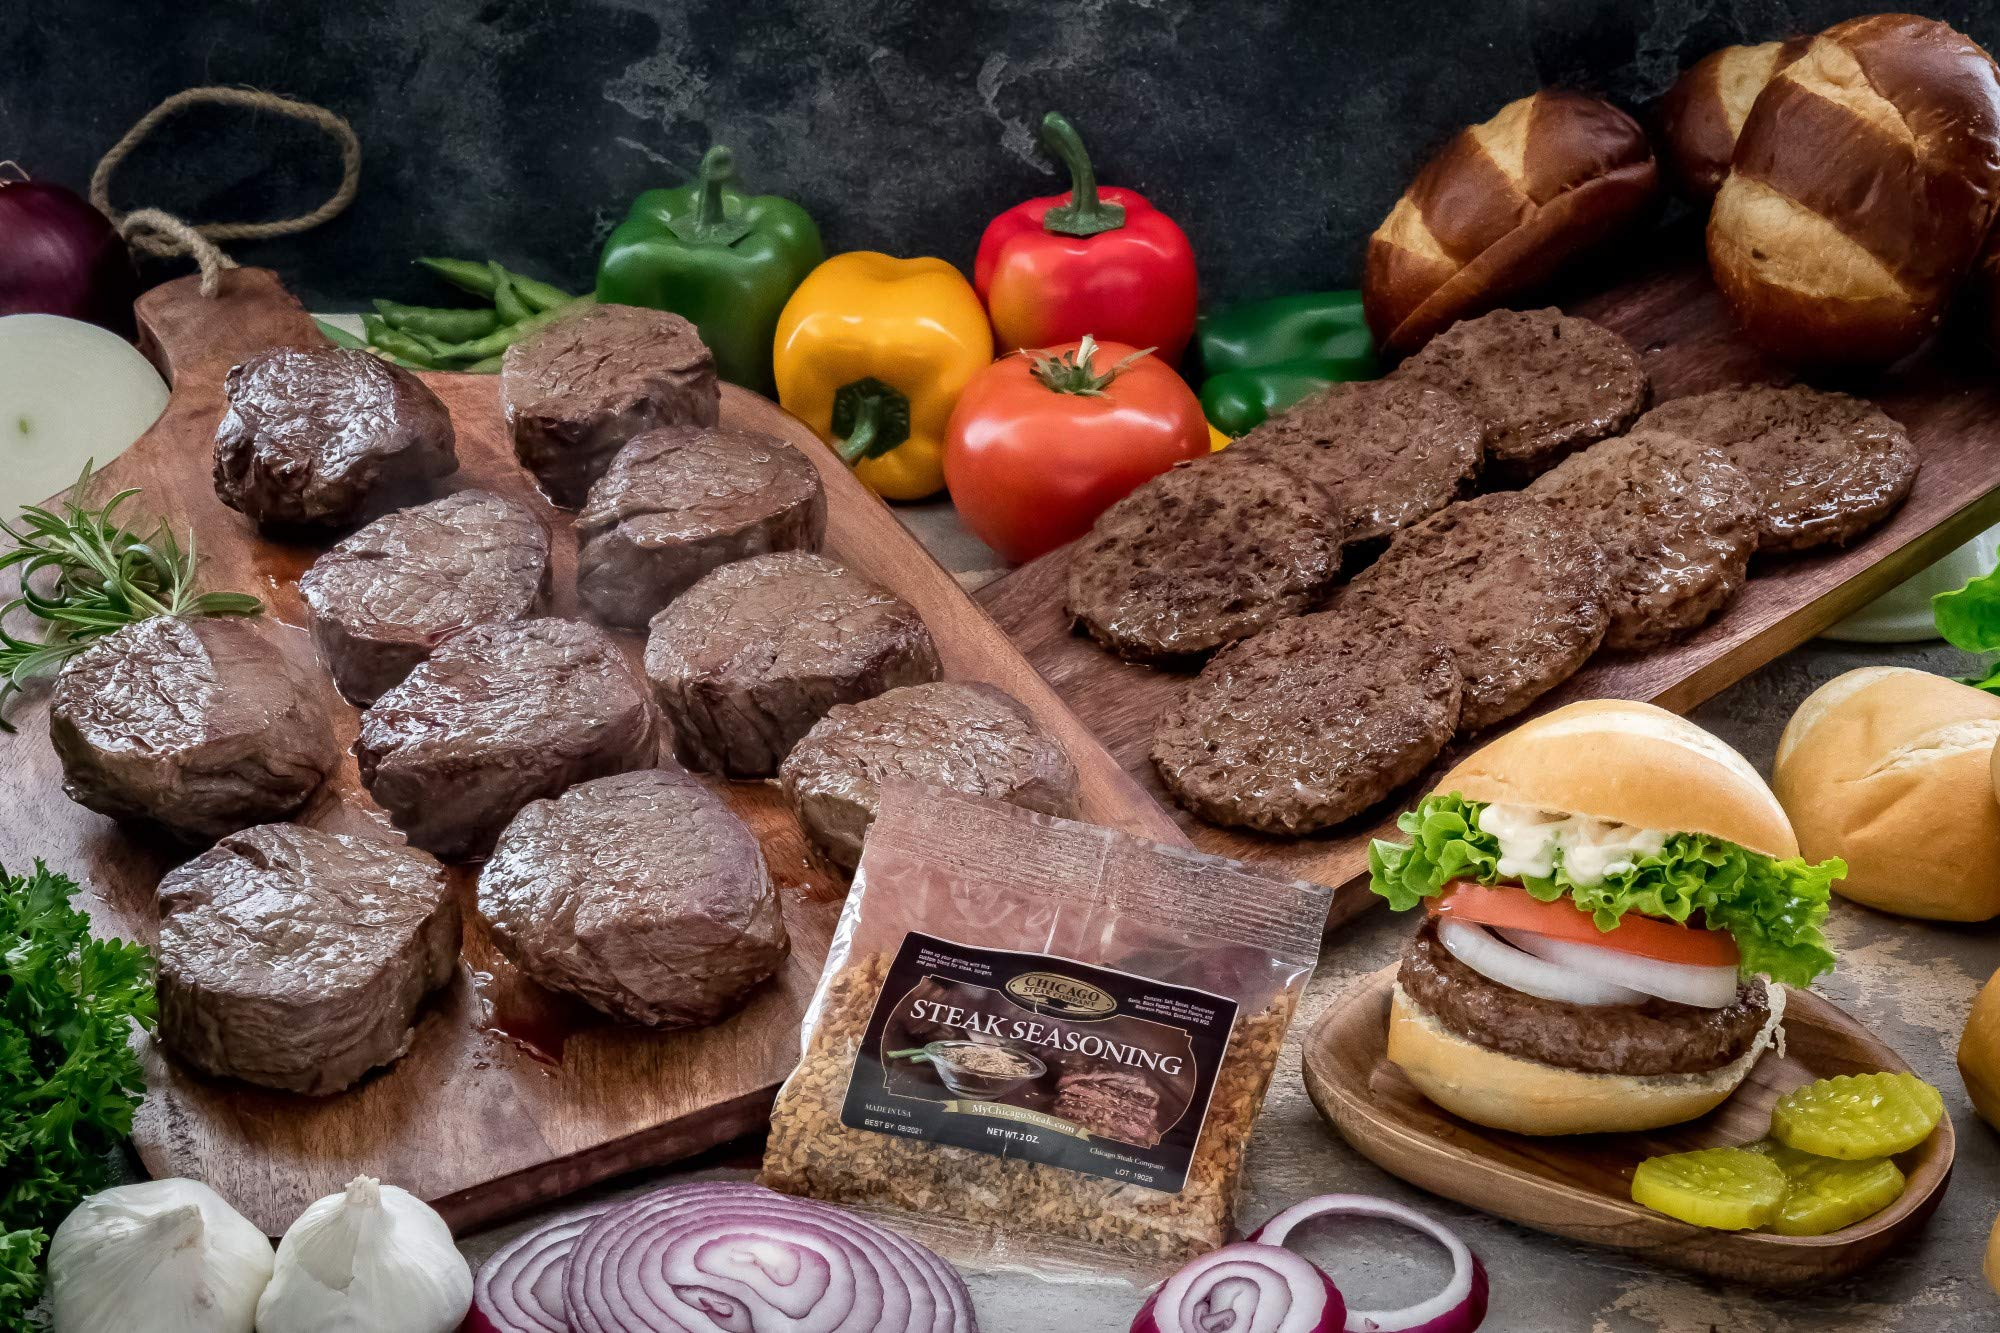 Butcher's Choice Gift Box 10 (6 oz.) Filet Mignons & 8 (4 oz.) Angus Beef Steak Burgers - Wet Aged Filet Mignons and Angus Beef Burgers Gift Set with 1 Pack Steak Seasoning - Home-made Grilled Steak